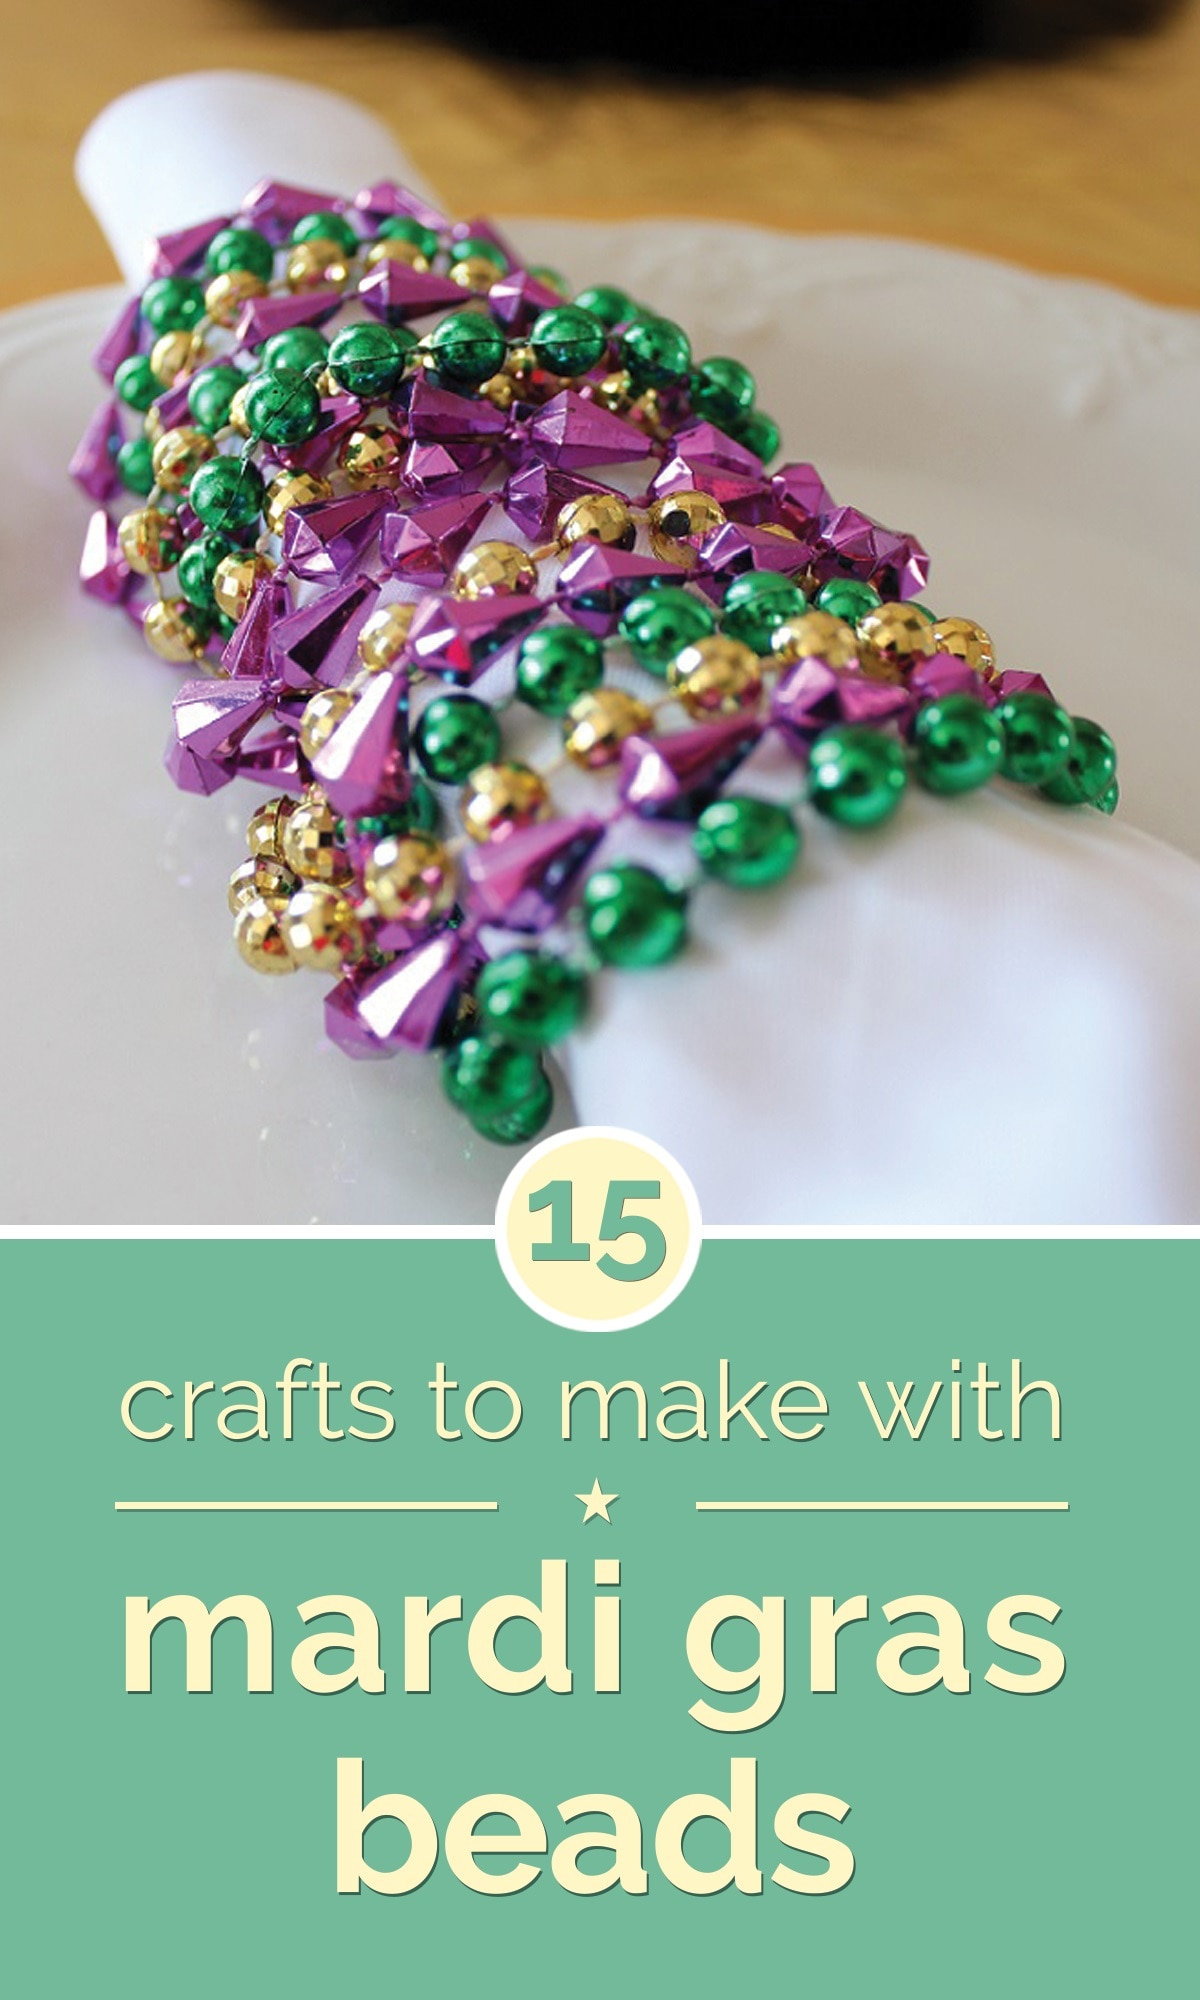 Lovely Mardi Gras Kids Crafts Part - 12: Diy-mardi-gras-bead-crafts